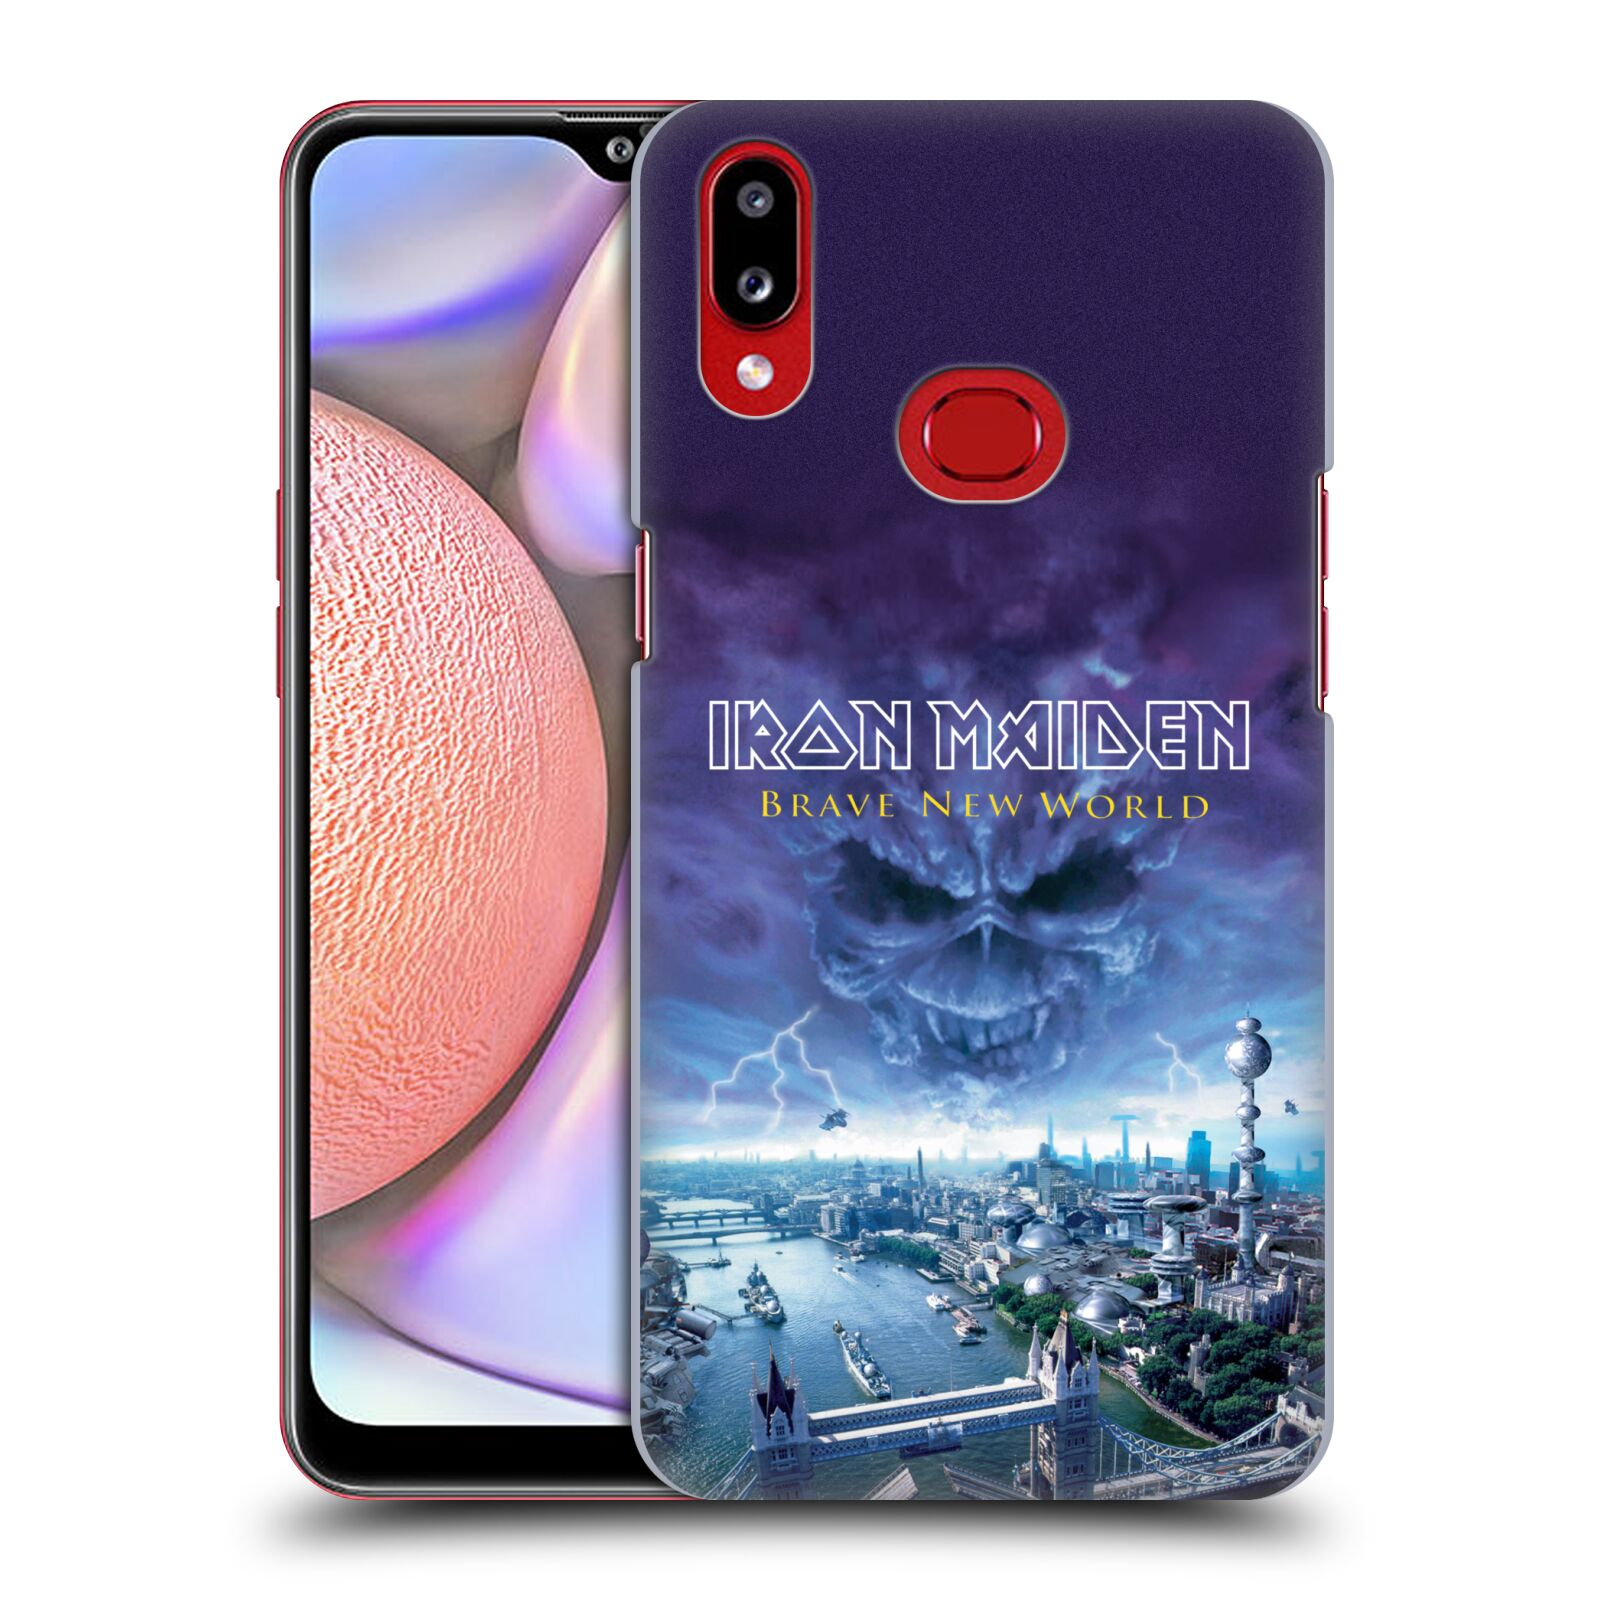 Official Iron Maiden Album Covers Brave New World Case for Samsung Galaxy A10s (2019)